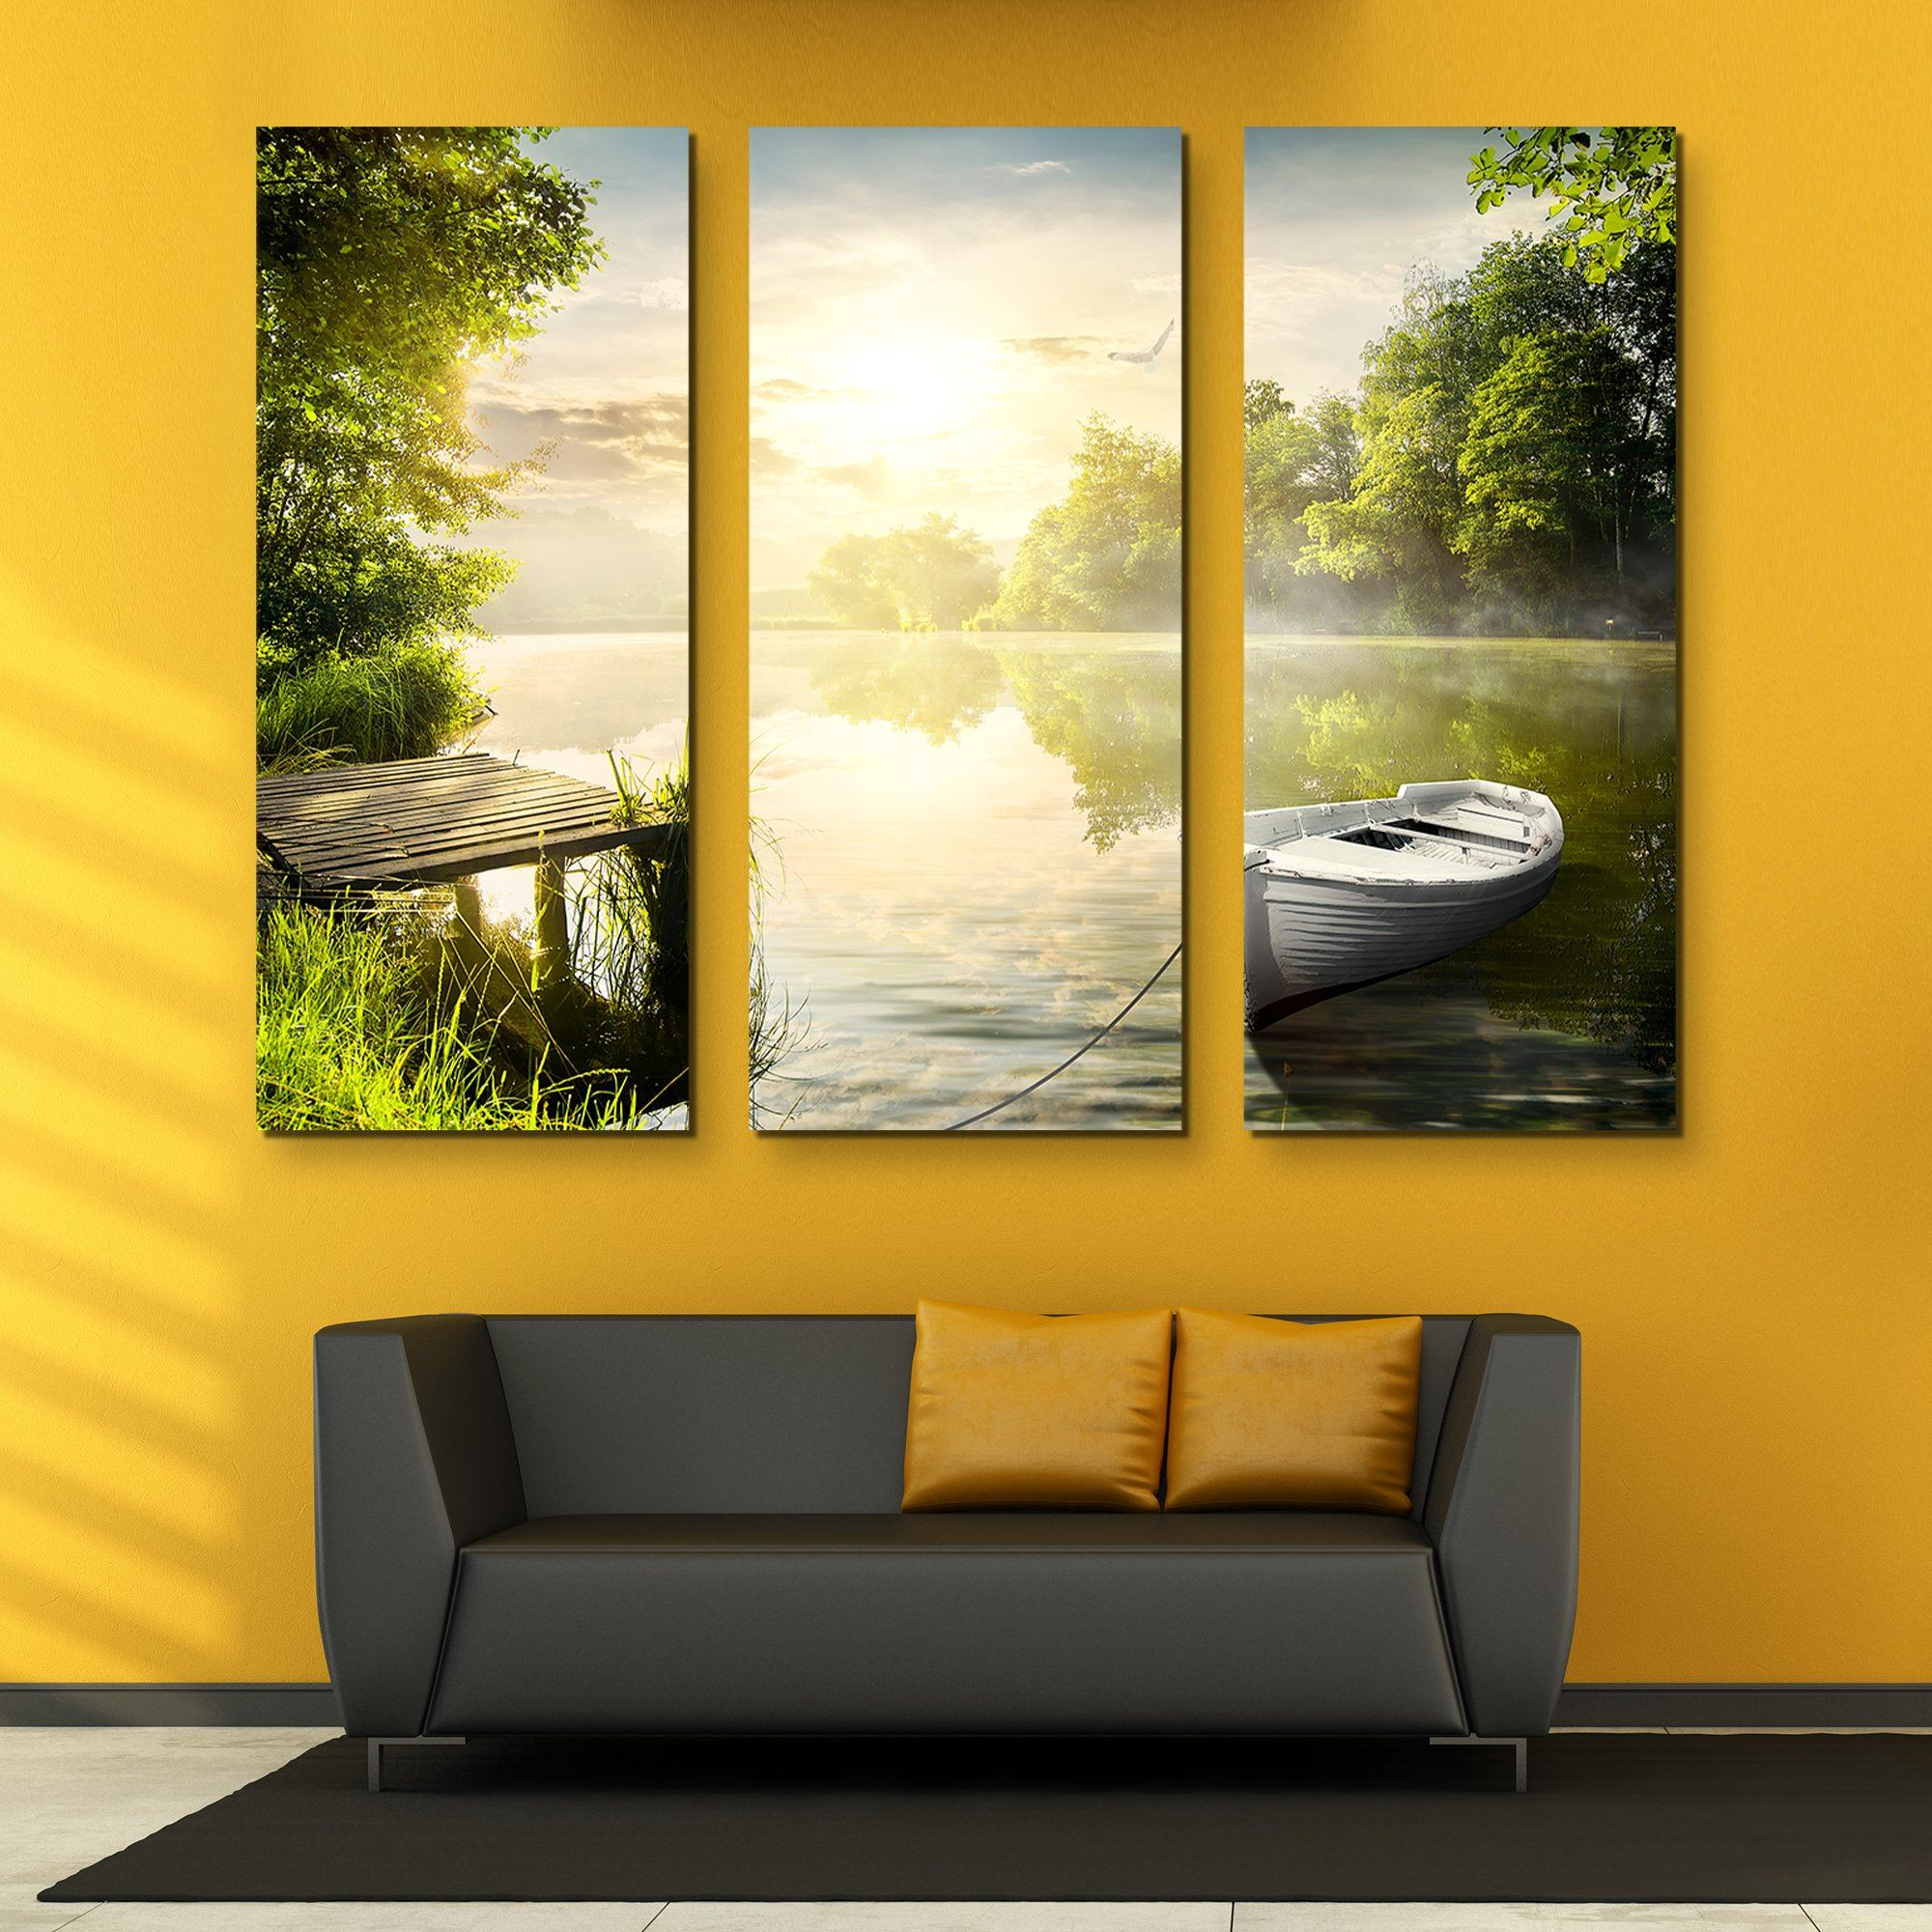 3 piece Along the Riverbanks wall art